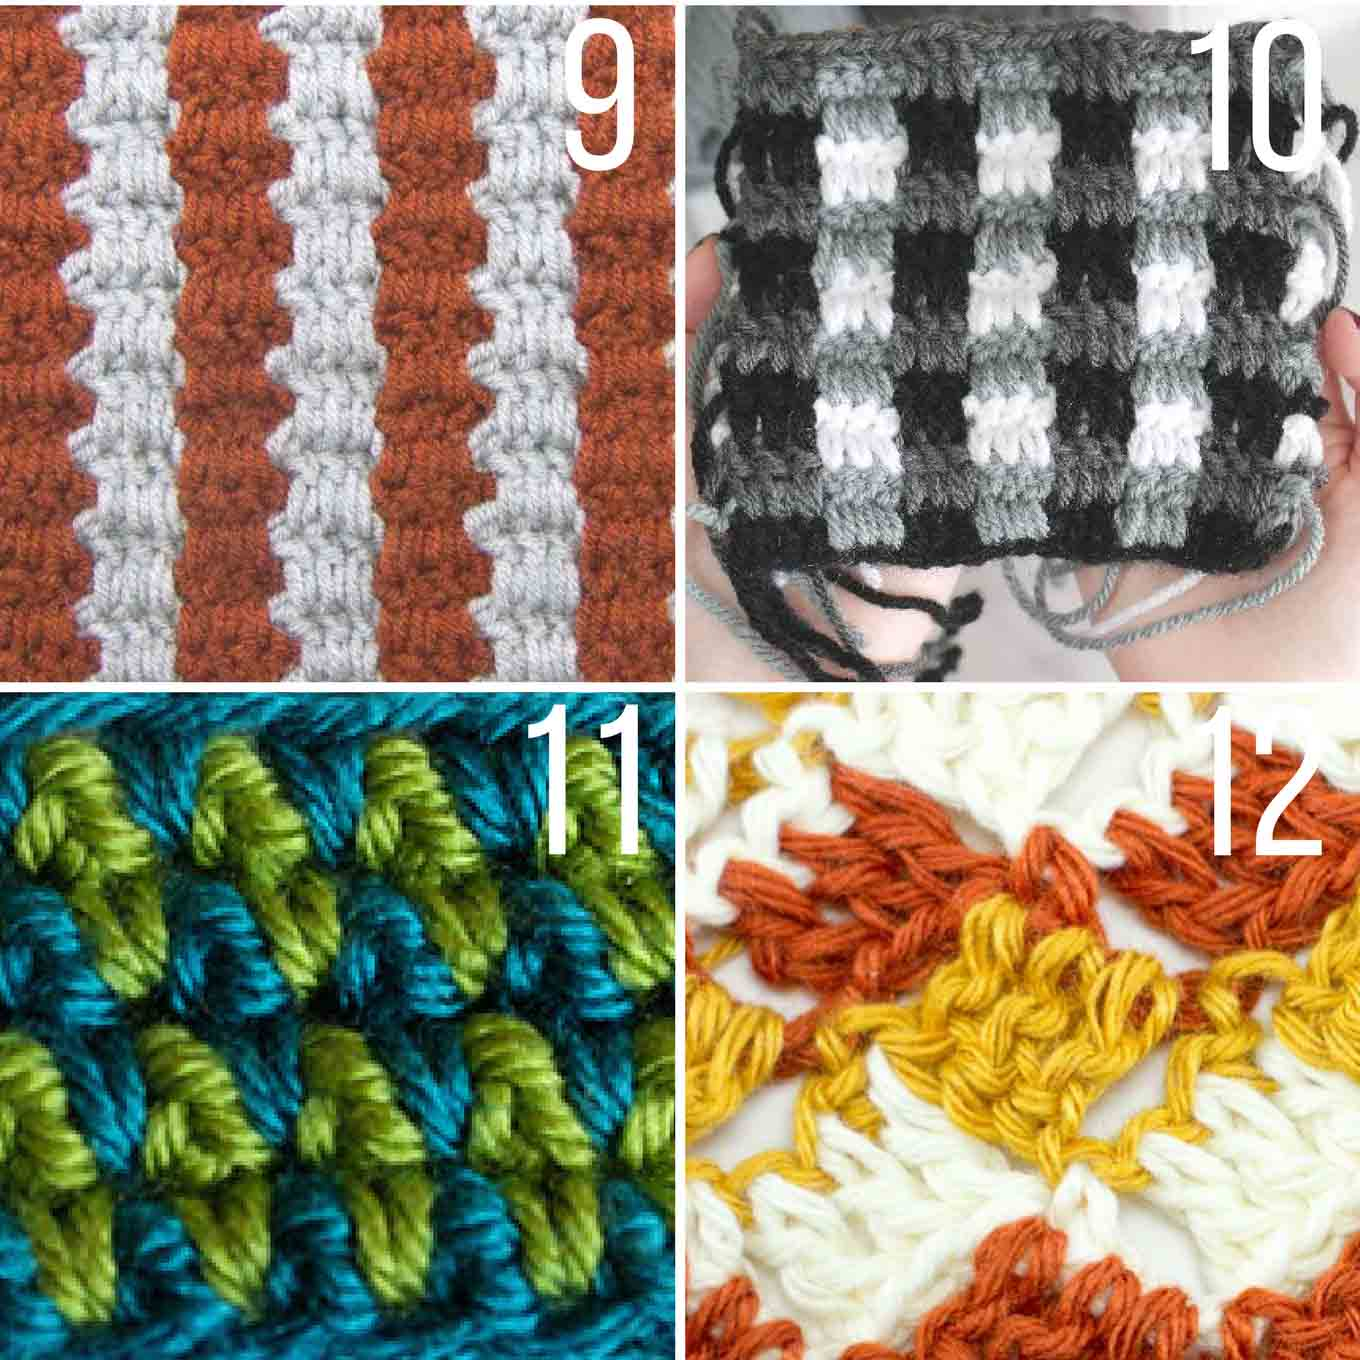 Each of these stitch tutorials is made using multiple colors of yarn to create stunning effects! This crochet stitches list has something for everyone--beginner to advanced.